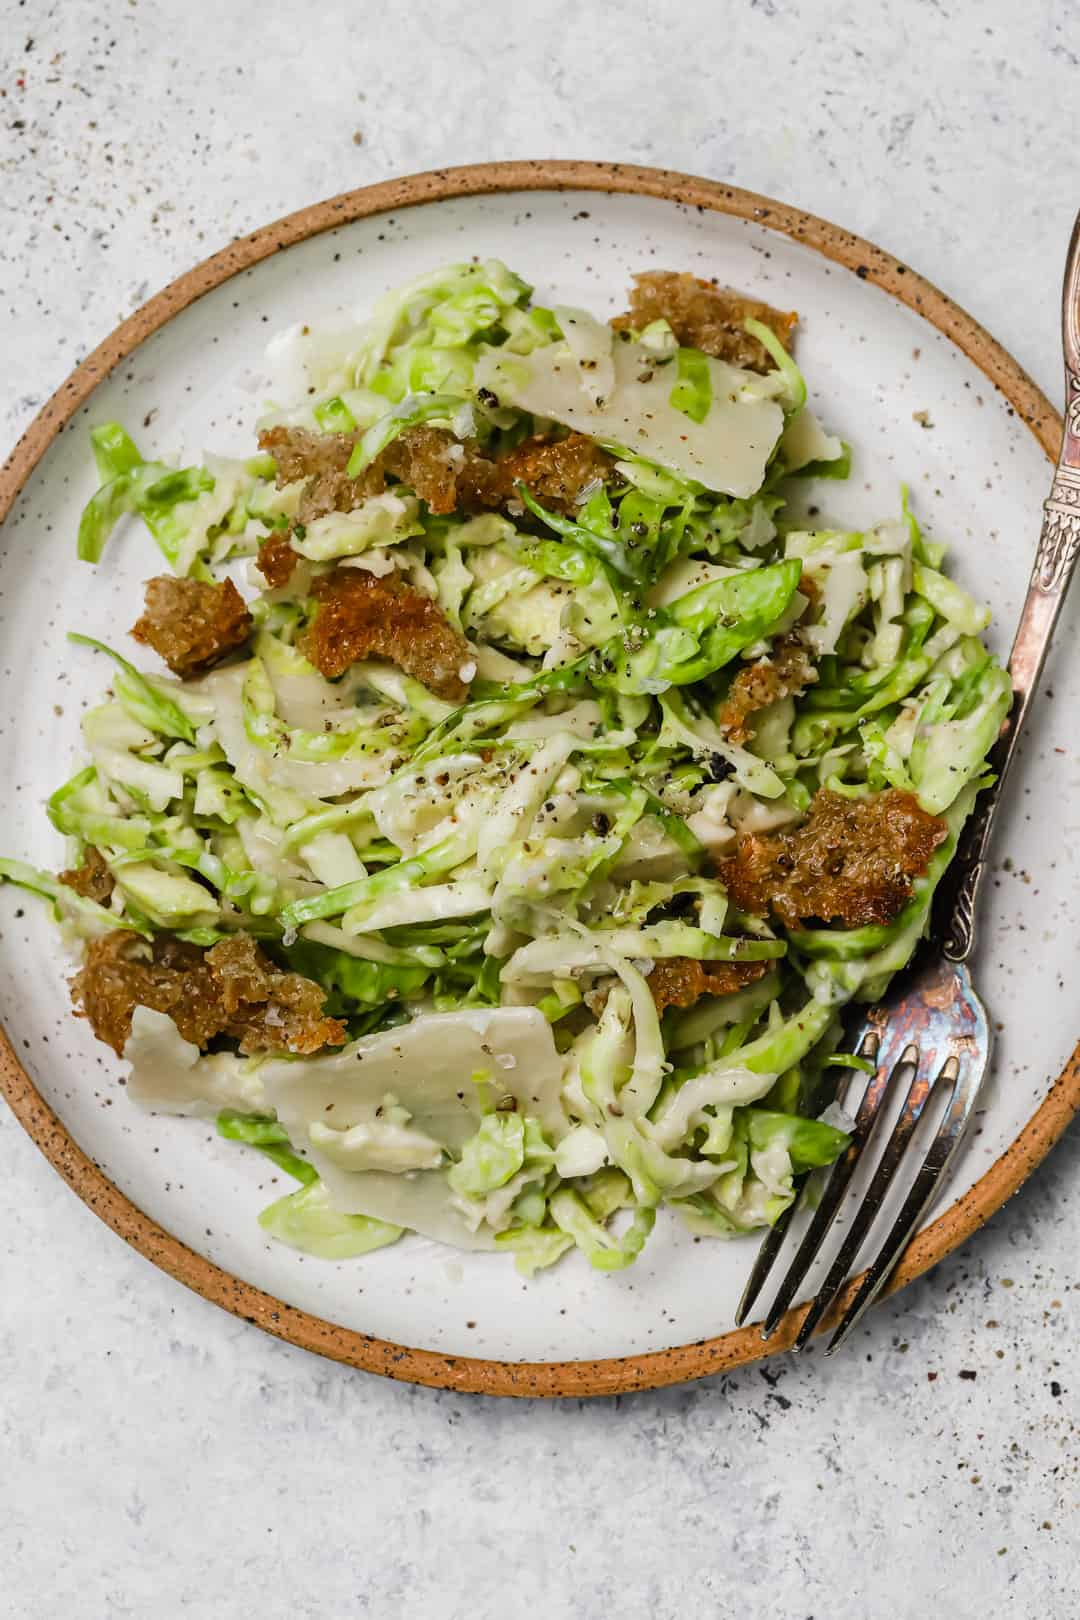 Brussel sprouts caesar salad on a plate with a fork